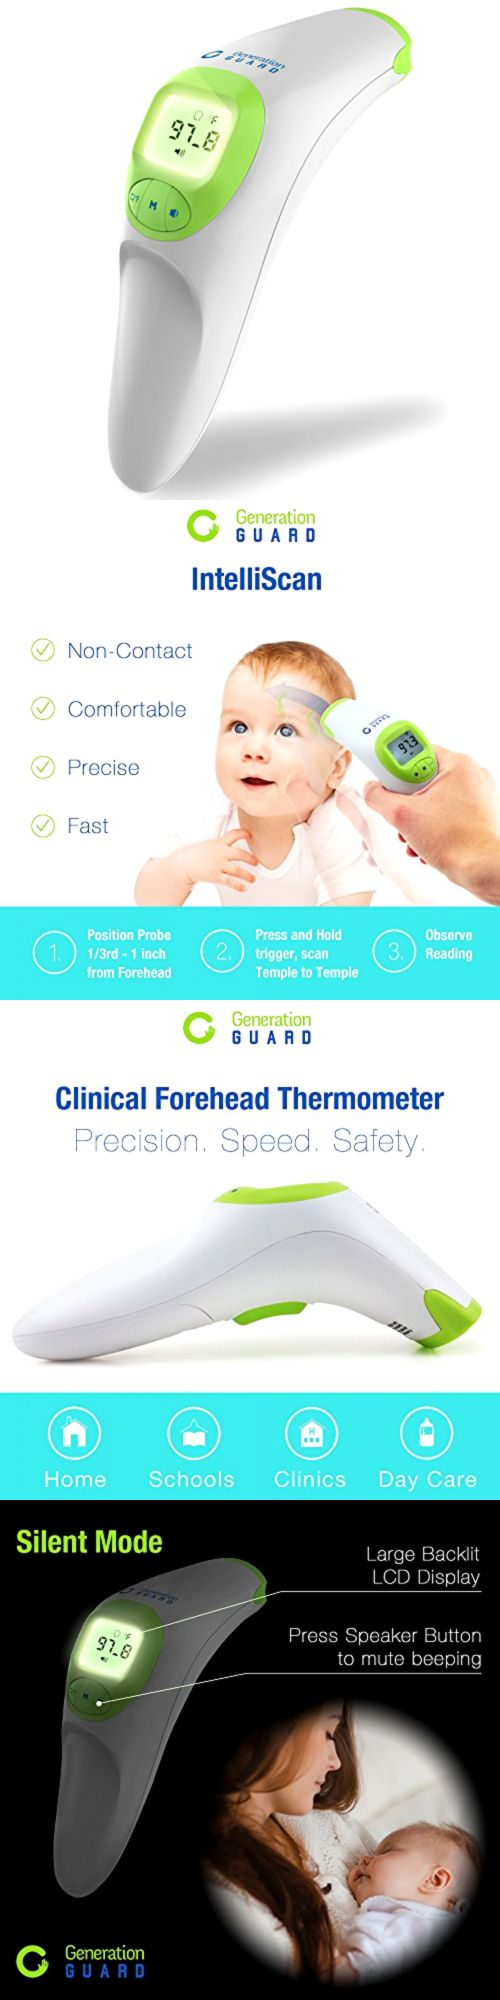 Baby Thermometers 117026: Clinical Forehead Thermometer Fda Approved Instant Read Sensor For Digital Fever -> BUY IT NOW ONLY: $37.41 on eBay!